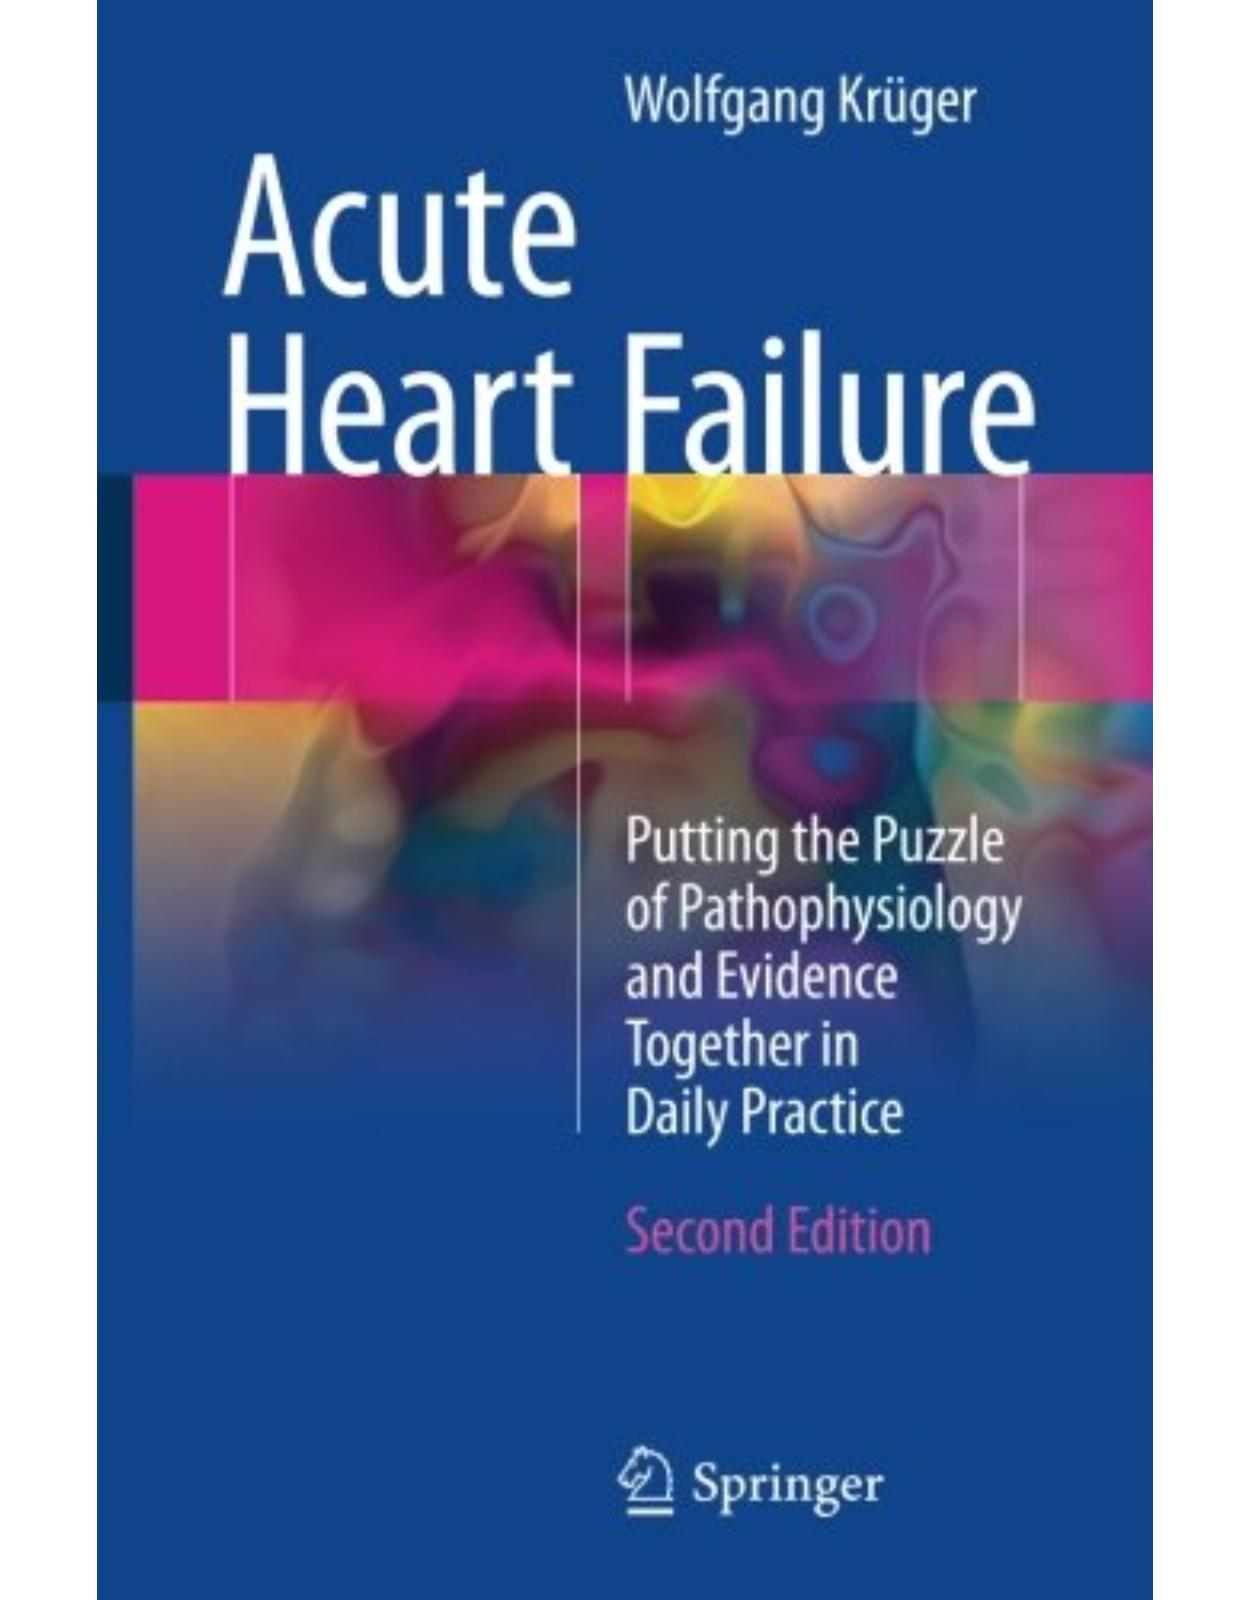 Acute Heart Failure: Putting the Puzzle of Pathophysiology and Evidence Together in Daily Practice